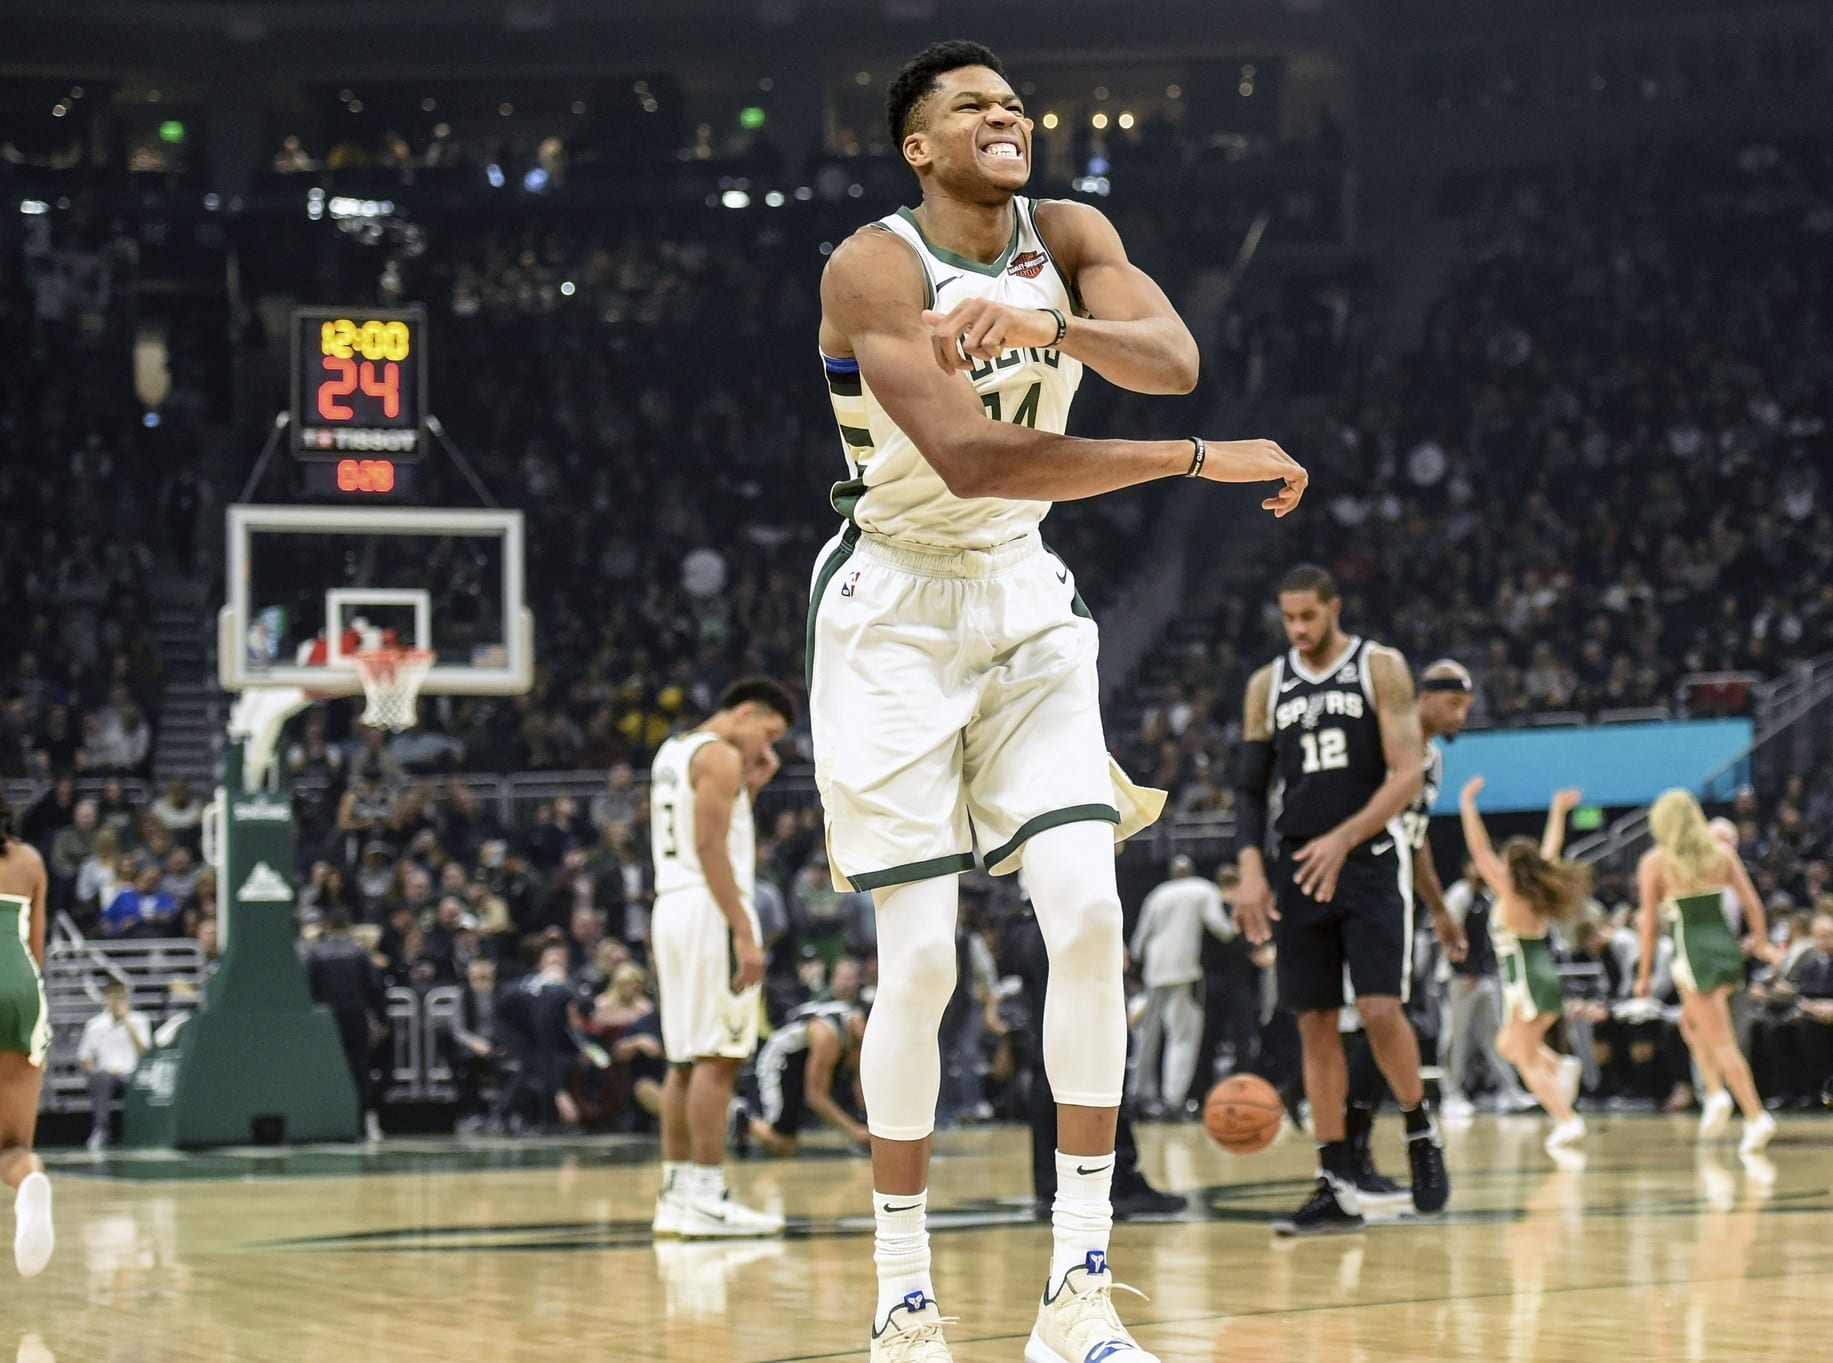 b3d49ac2105d Lakers News  Giannis Antetokounmpo Did Not Work Out With LeBron James To  Avoid Potentially Being Exploited